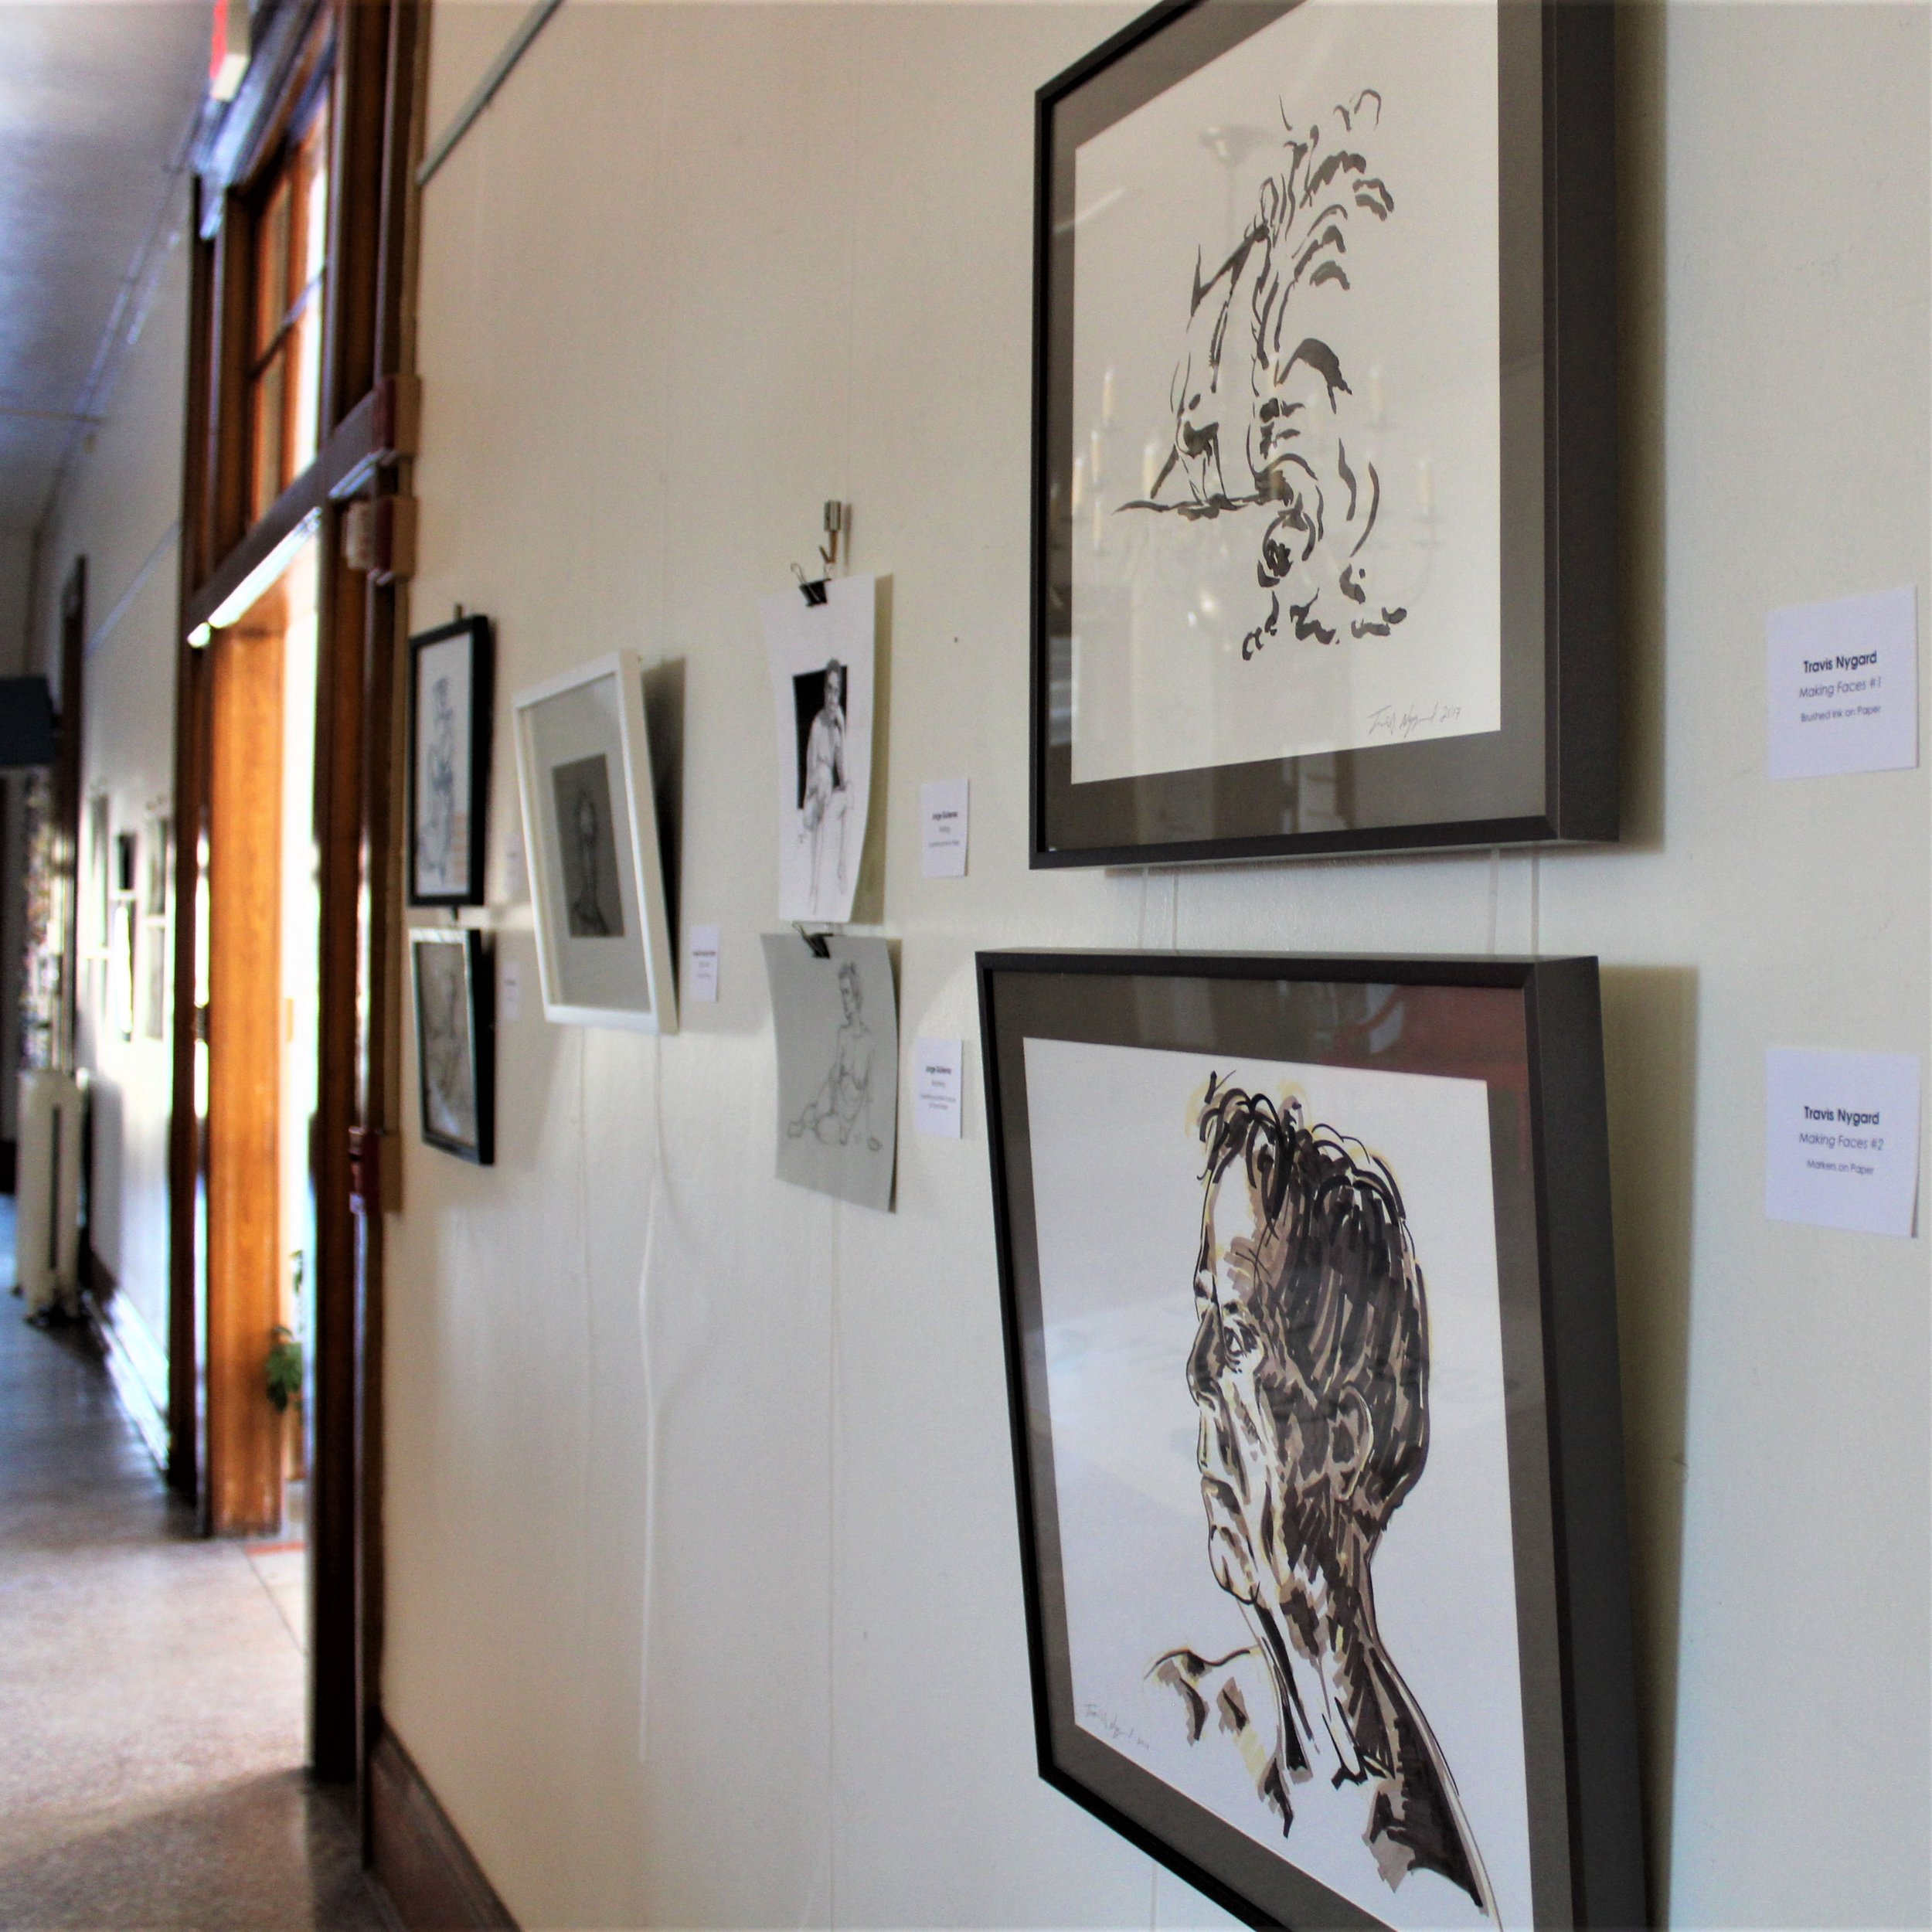 Now through the end of March, The Lobby Gallery at Town Square will feature artwork  by students of the figure drawing sessions held at Town Square.